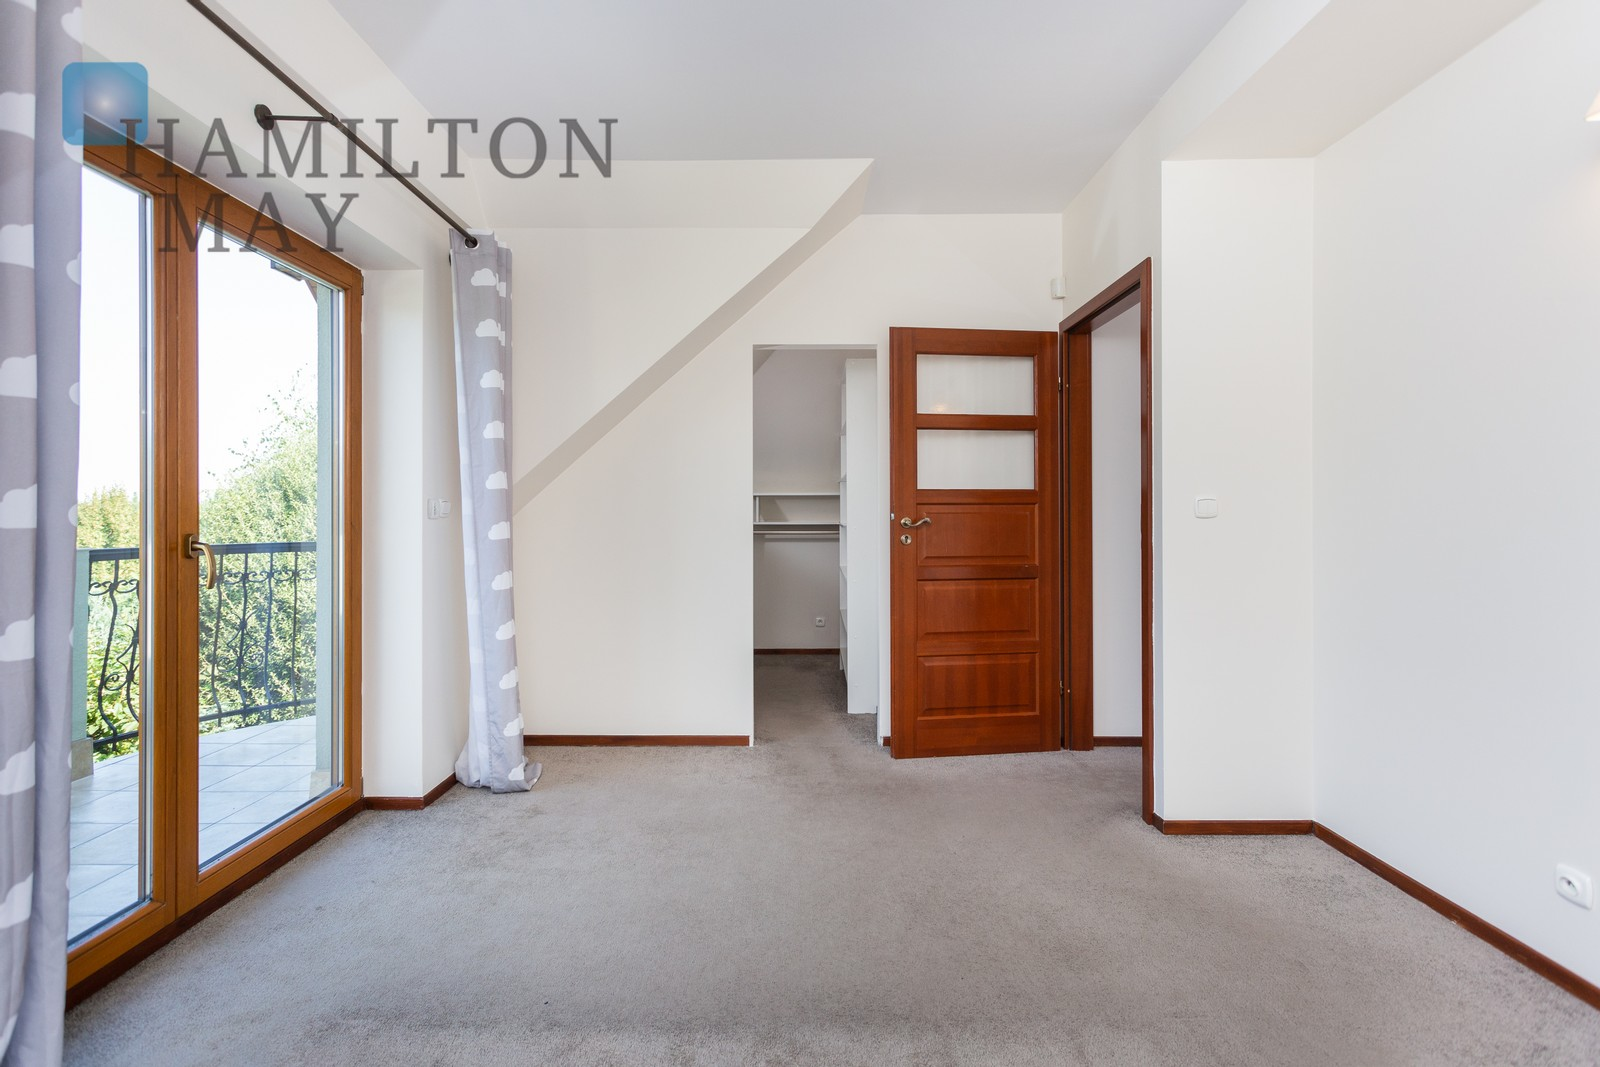 Spacious house for rent located in a sought after residential area - ul. Wiosenna Krakow for rent